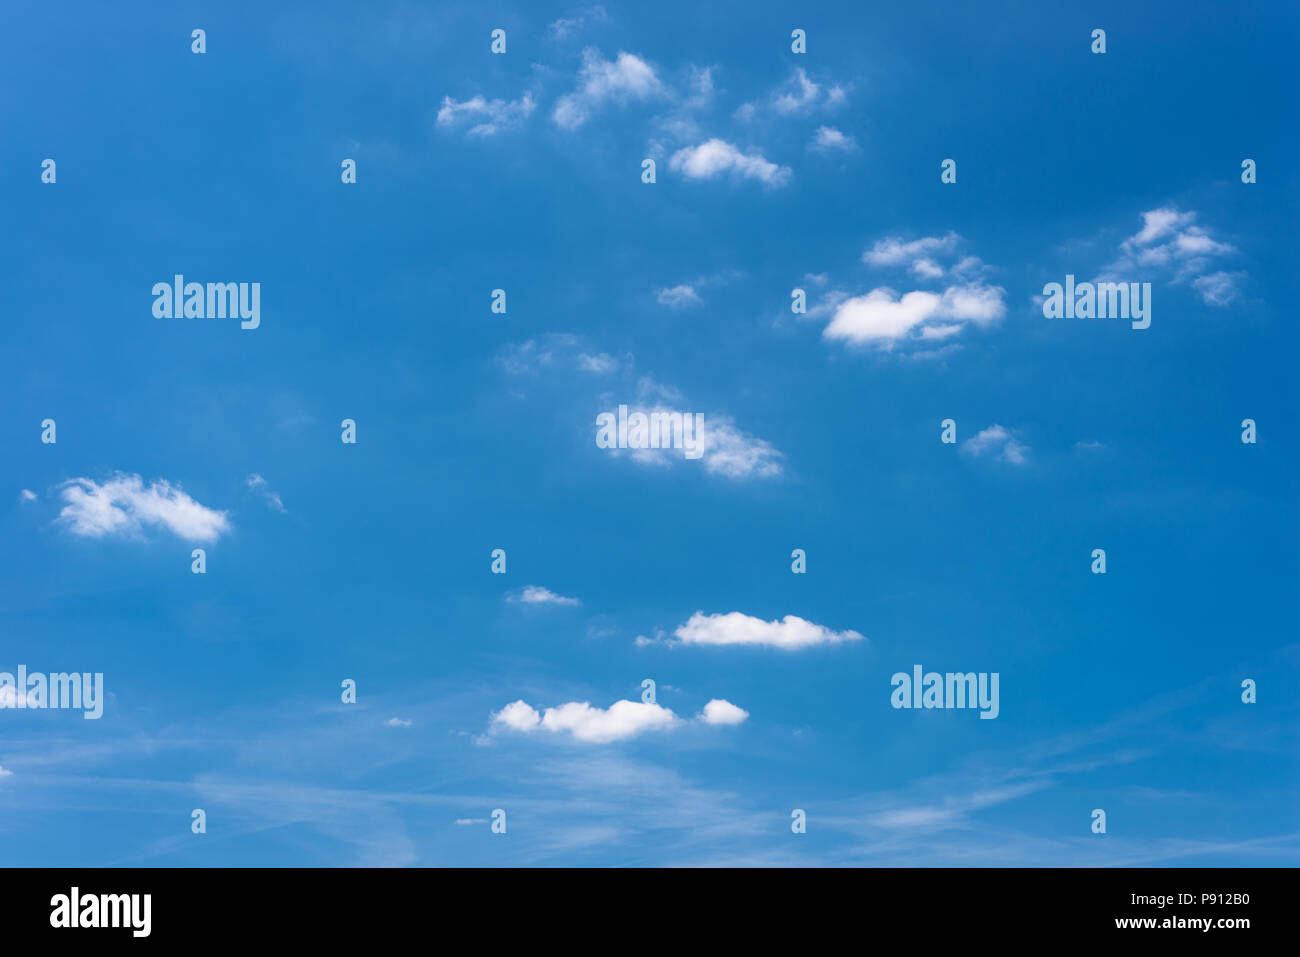 Beautiful blue sky with clouds on a hot summer day. - Stock Image